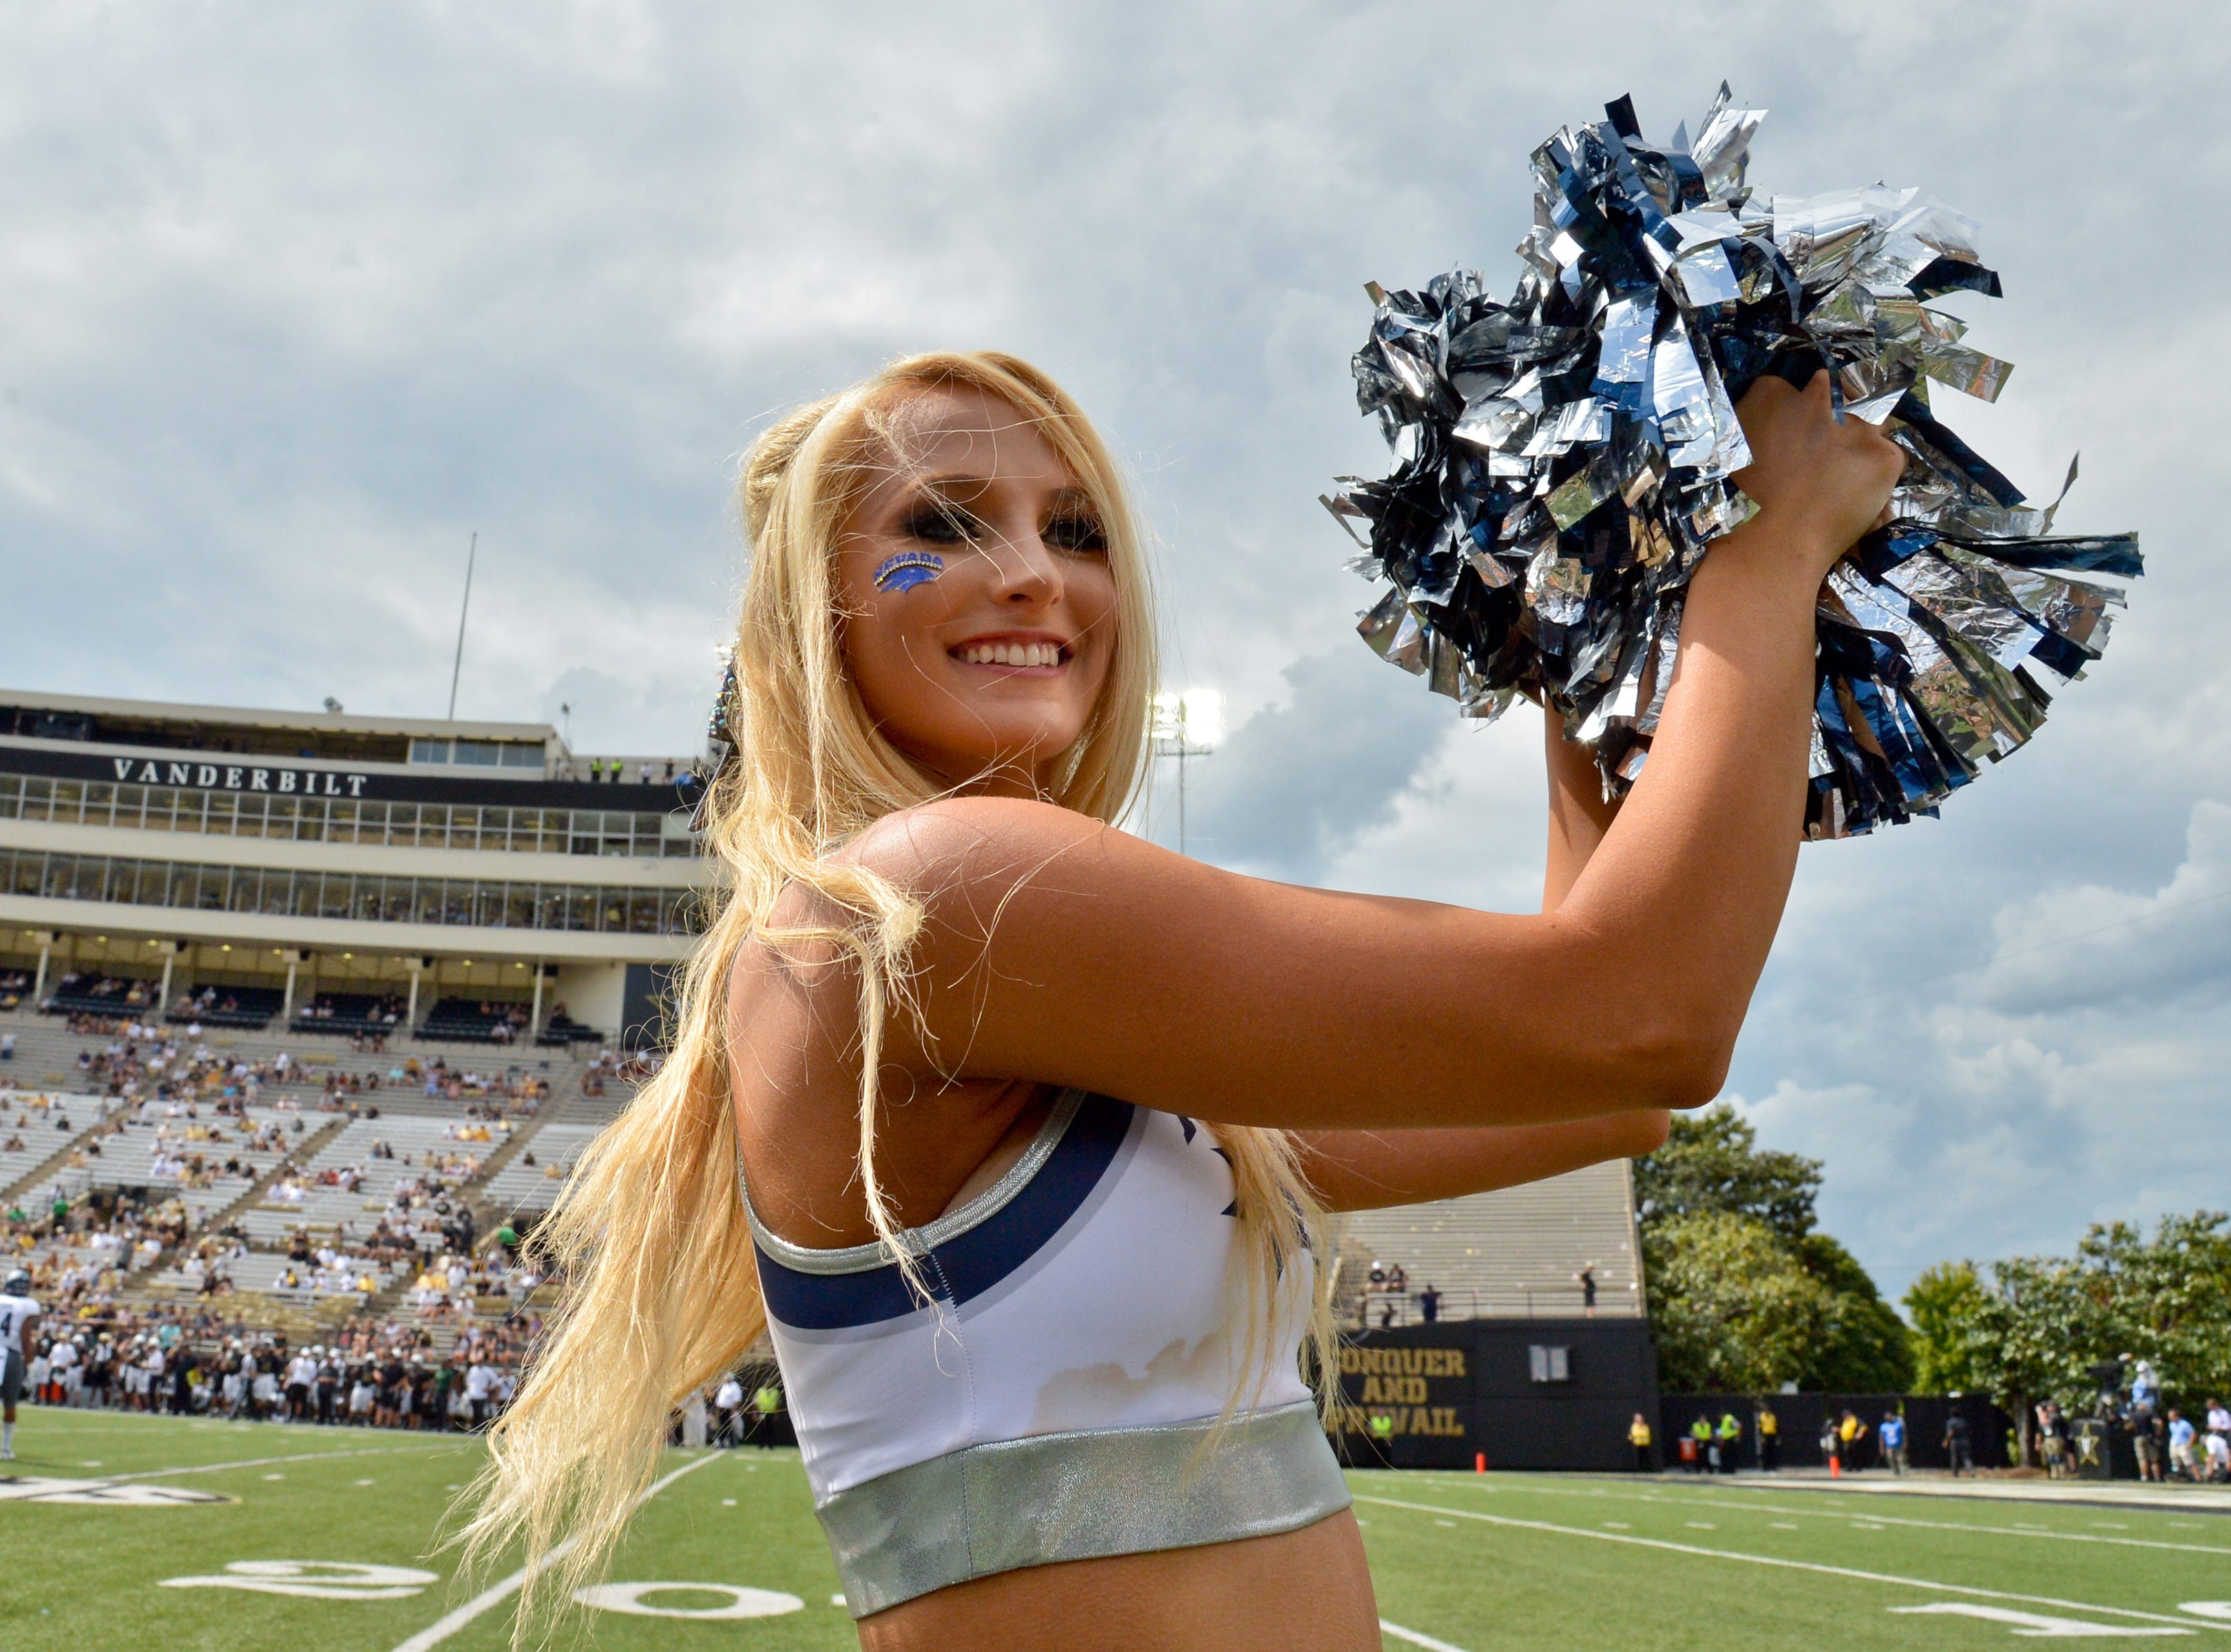 Week 2: A Nevada Wolf Pack cheerleader performs during the second half against the Vanderbilt Commodores at Vanderbilt Stadium.